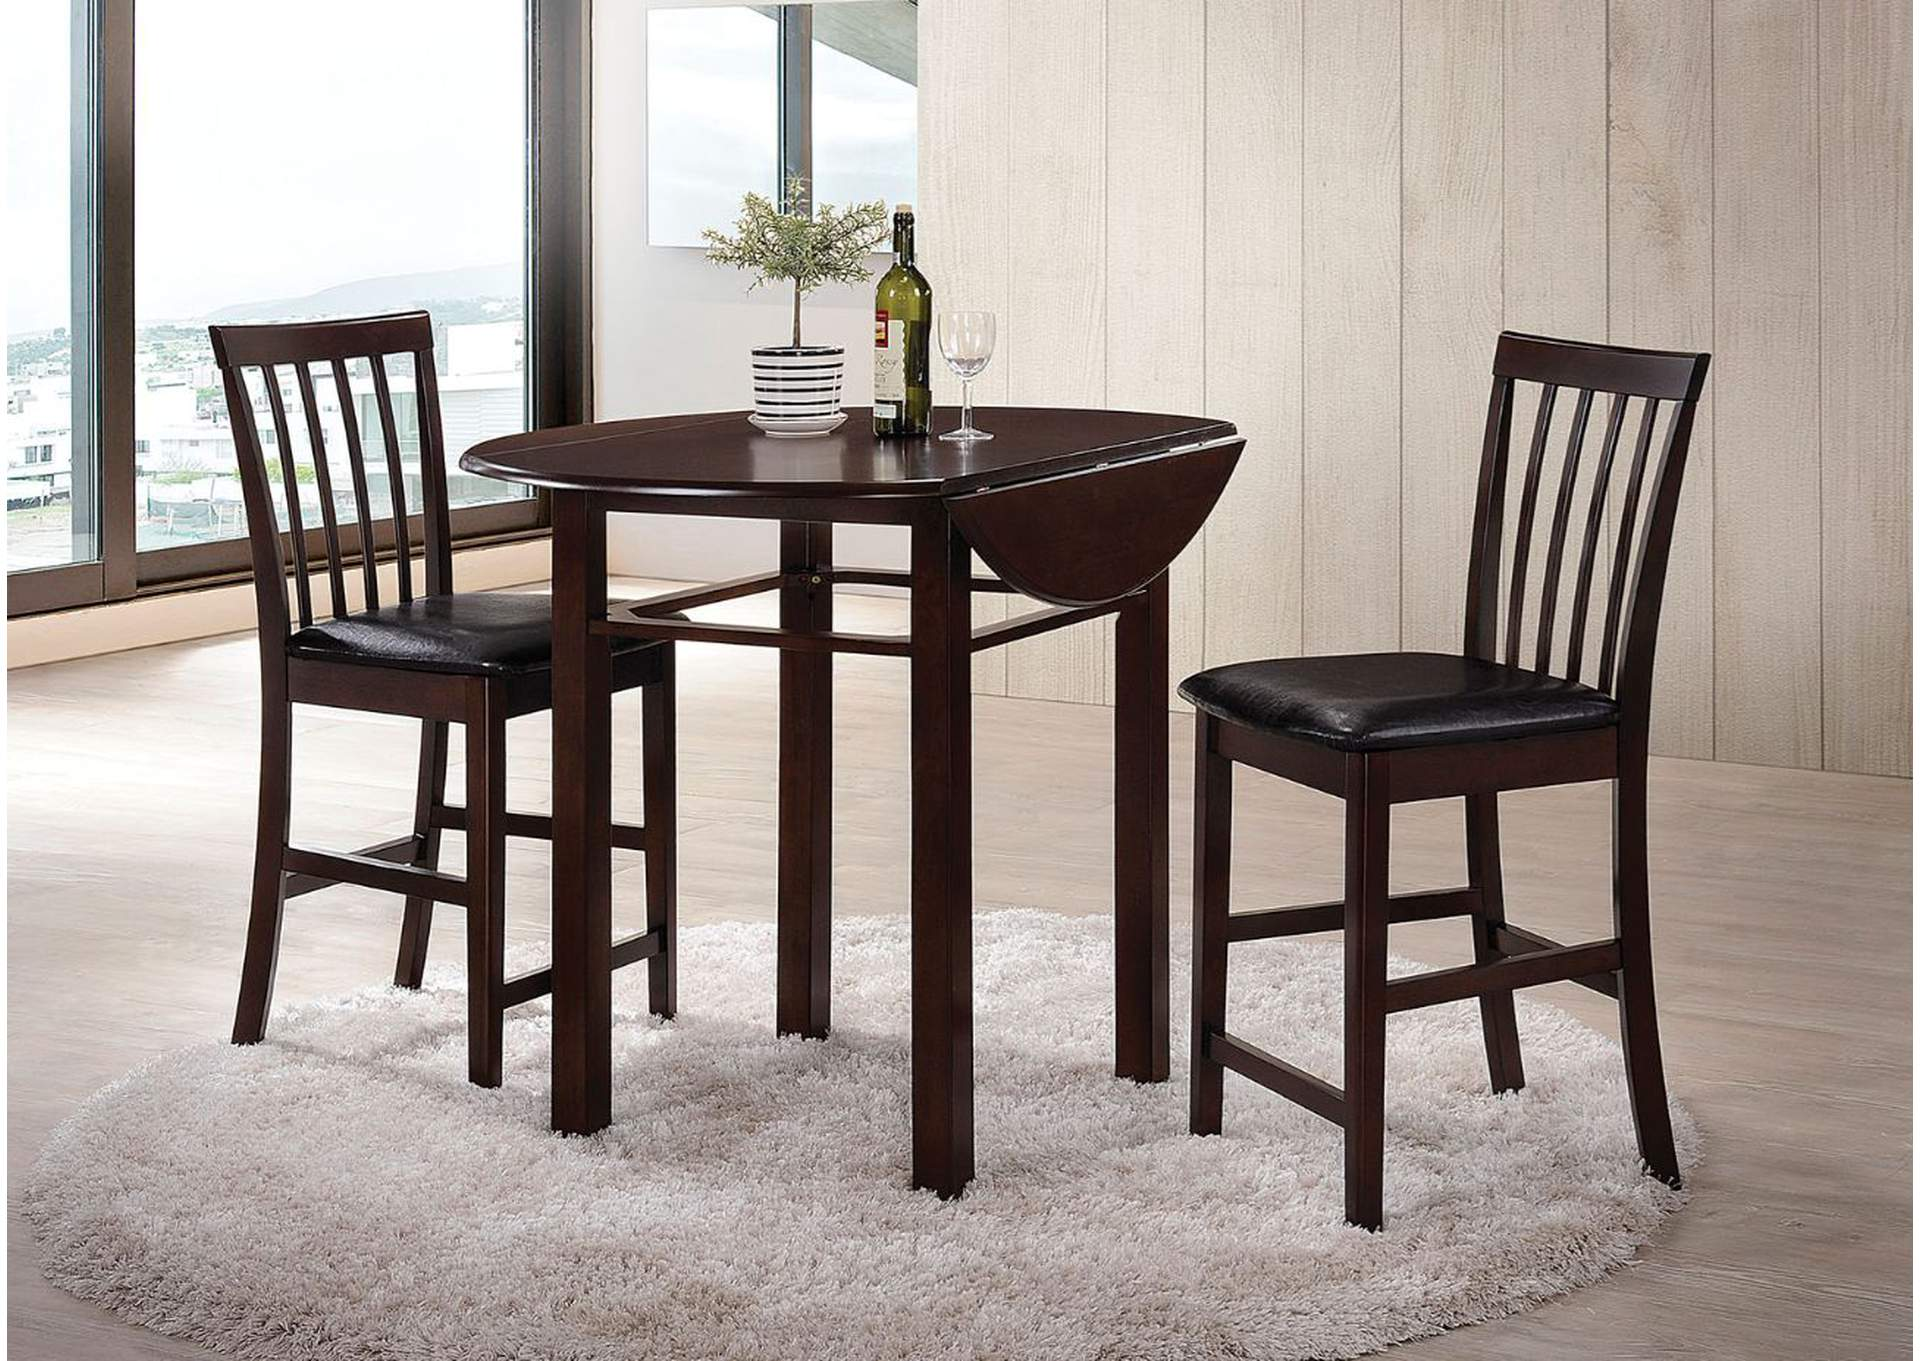 Artie Espresso & Black PU 3 Piece Counter Height Dining Set,Acme